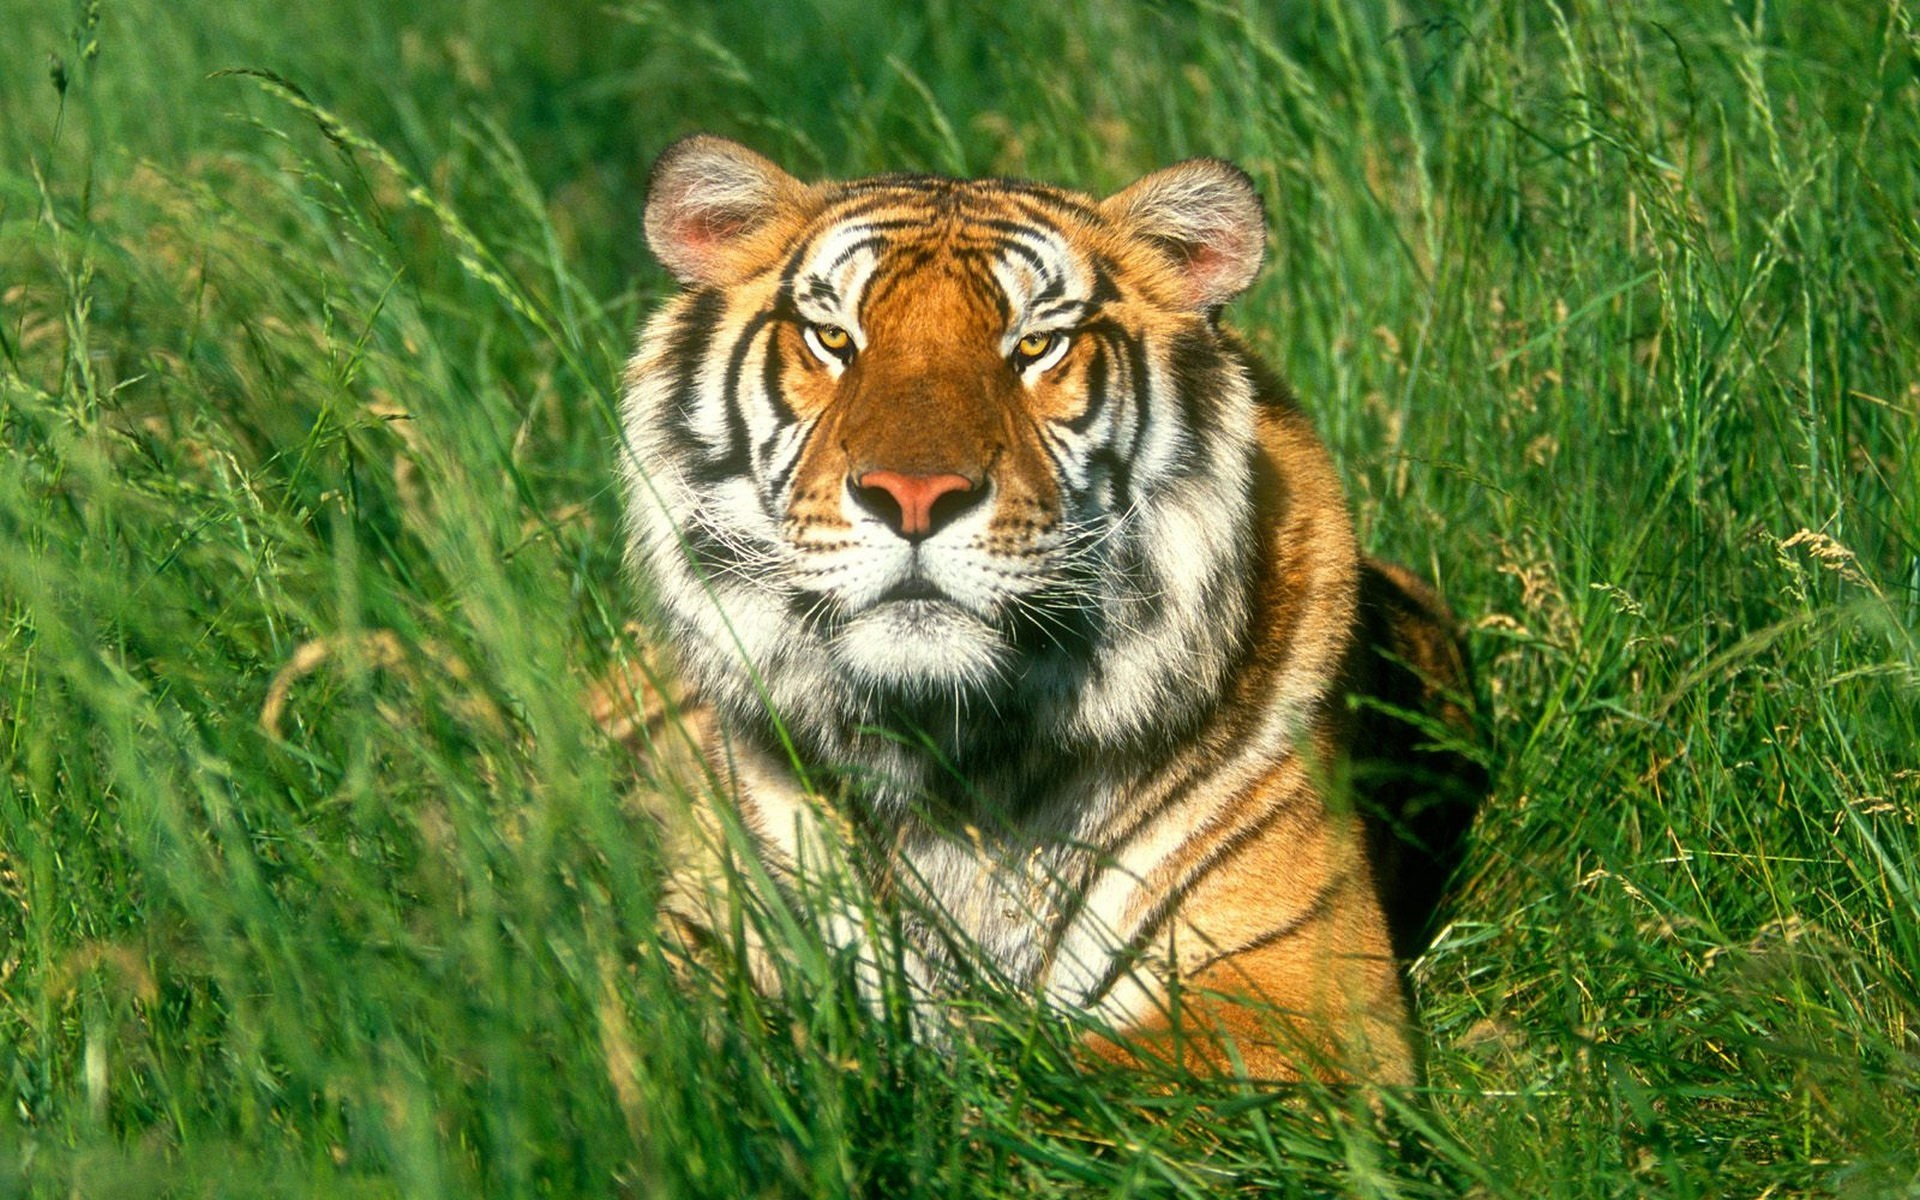 40383 download wallpaper Animals, Tigers screensavers and pictures for free